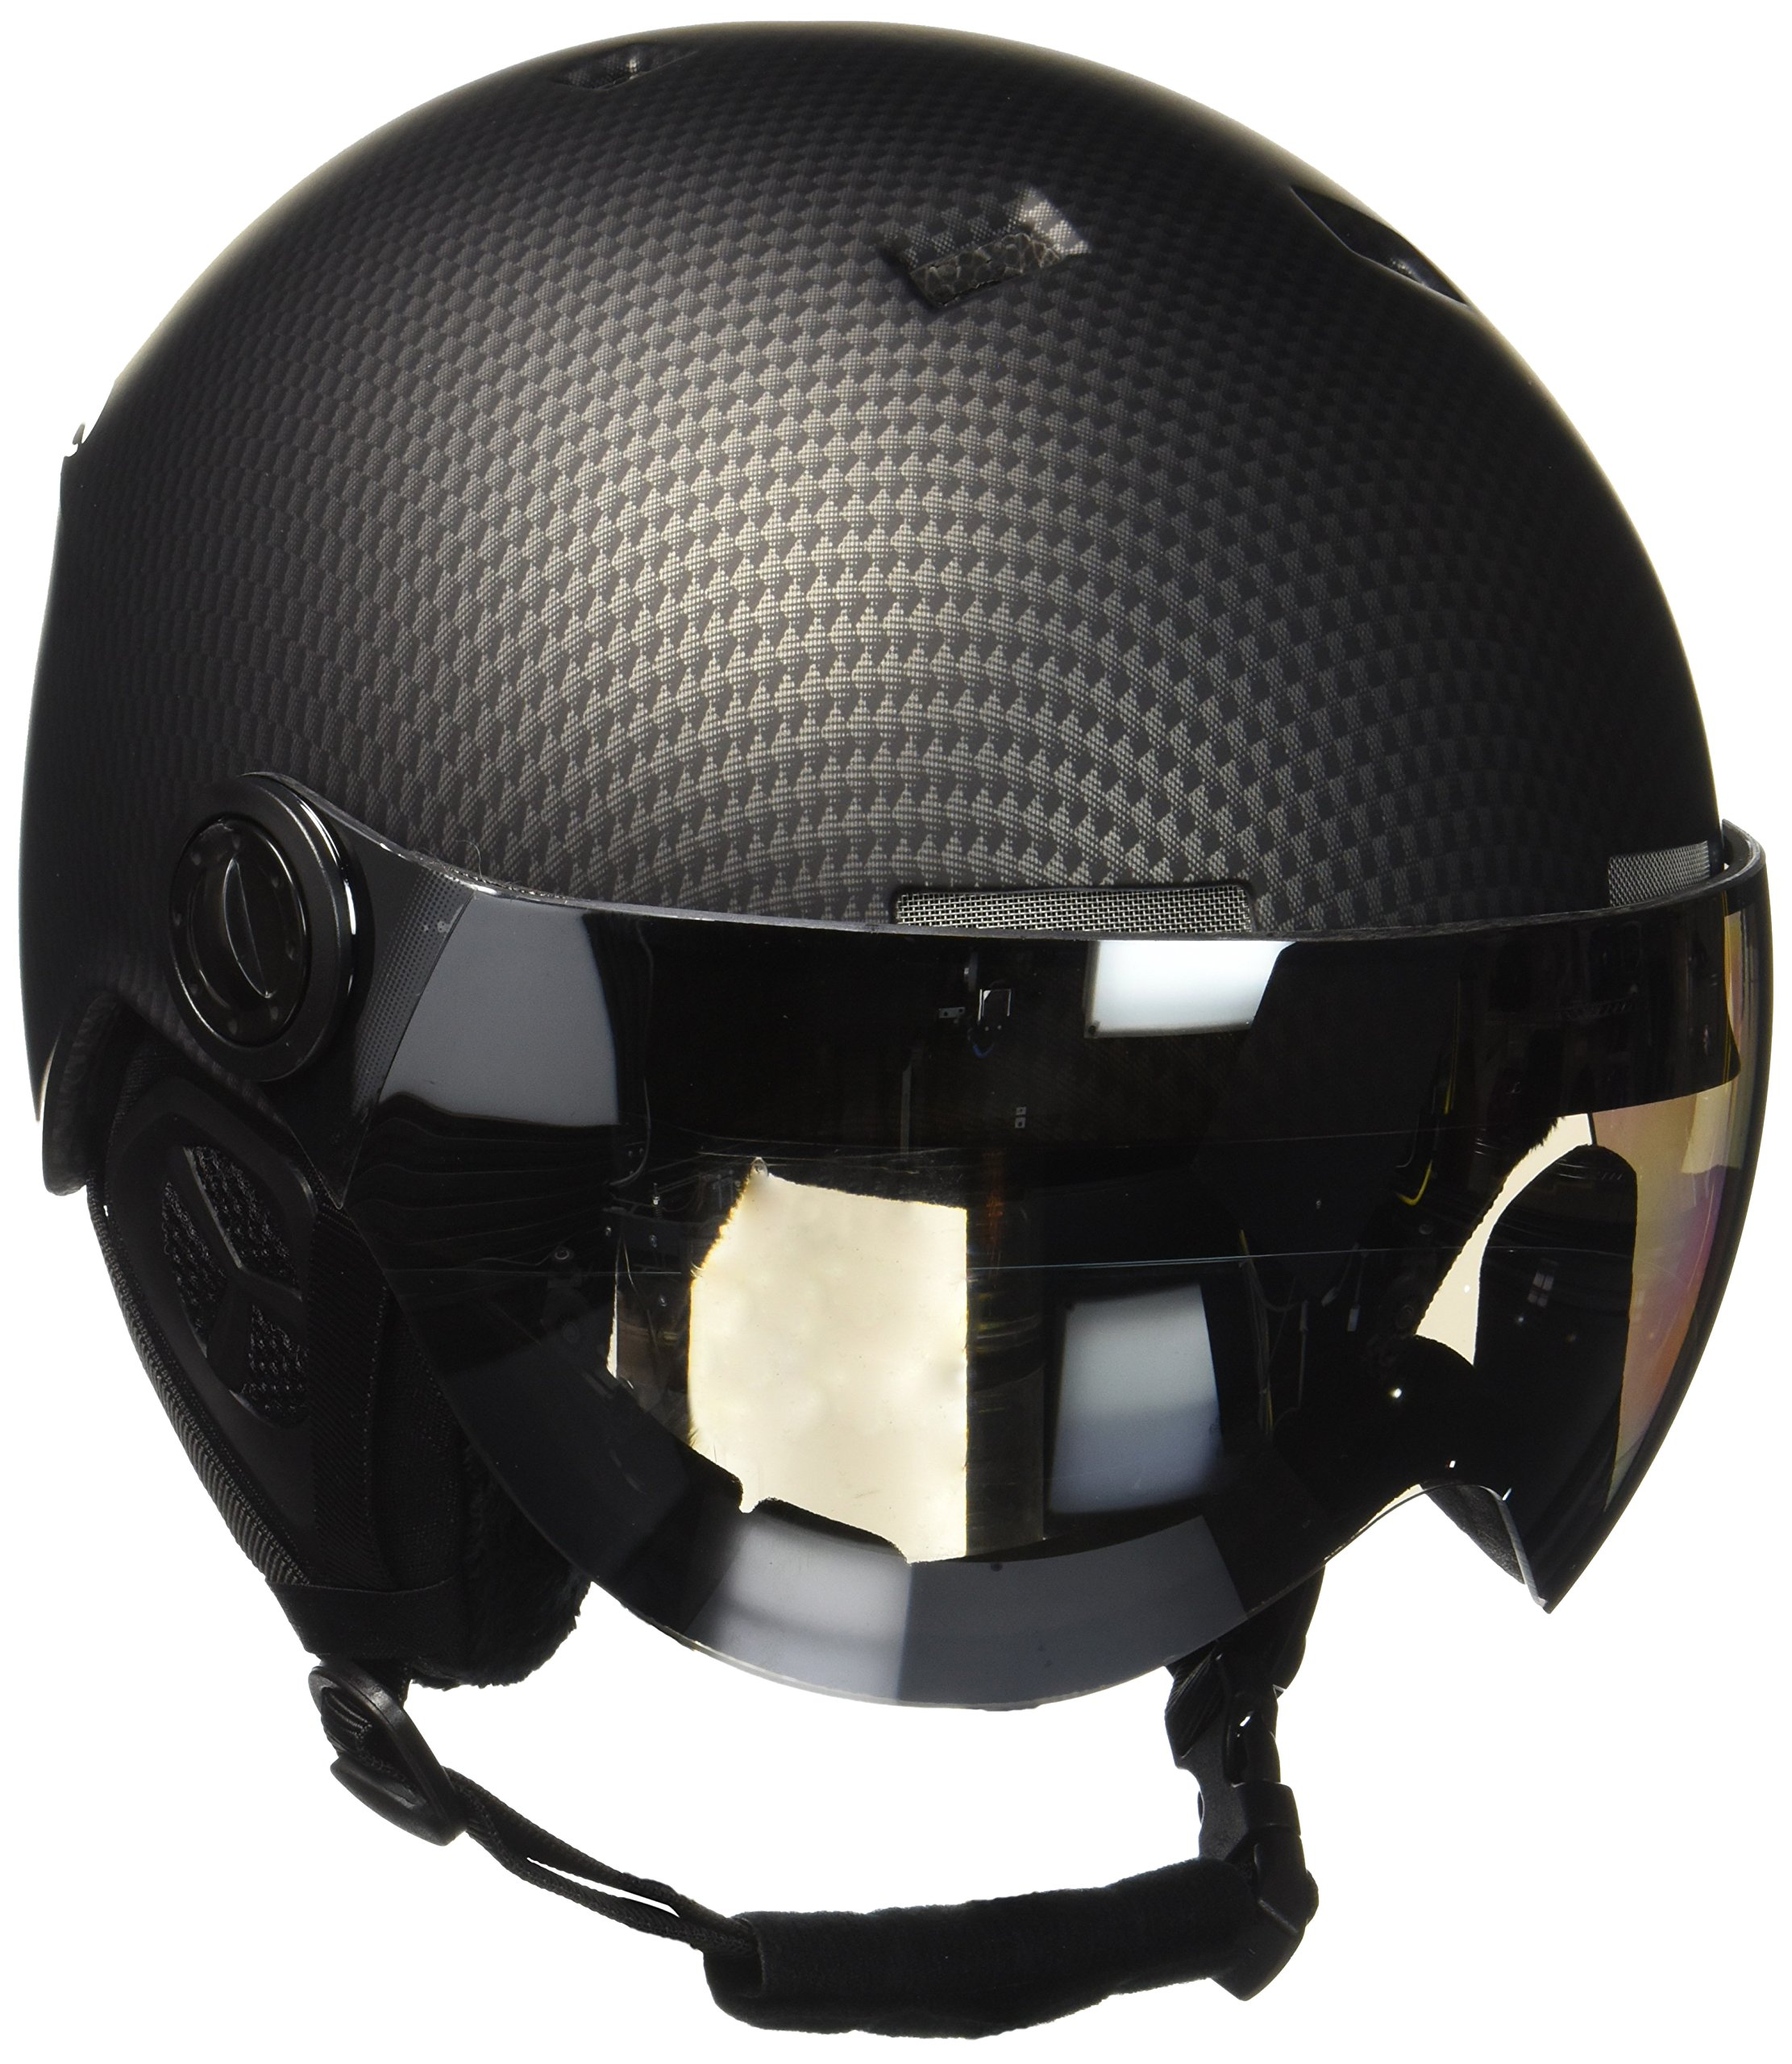 Black Crevice Skihelm - Casco de esquí, color Negro Carbon/Blanco (Black Carbon/White), talla M/L (58-61 cm)